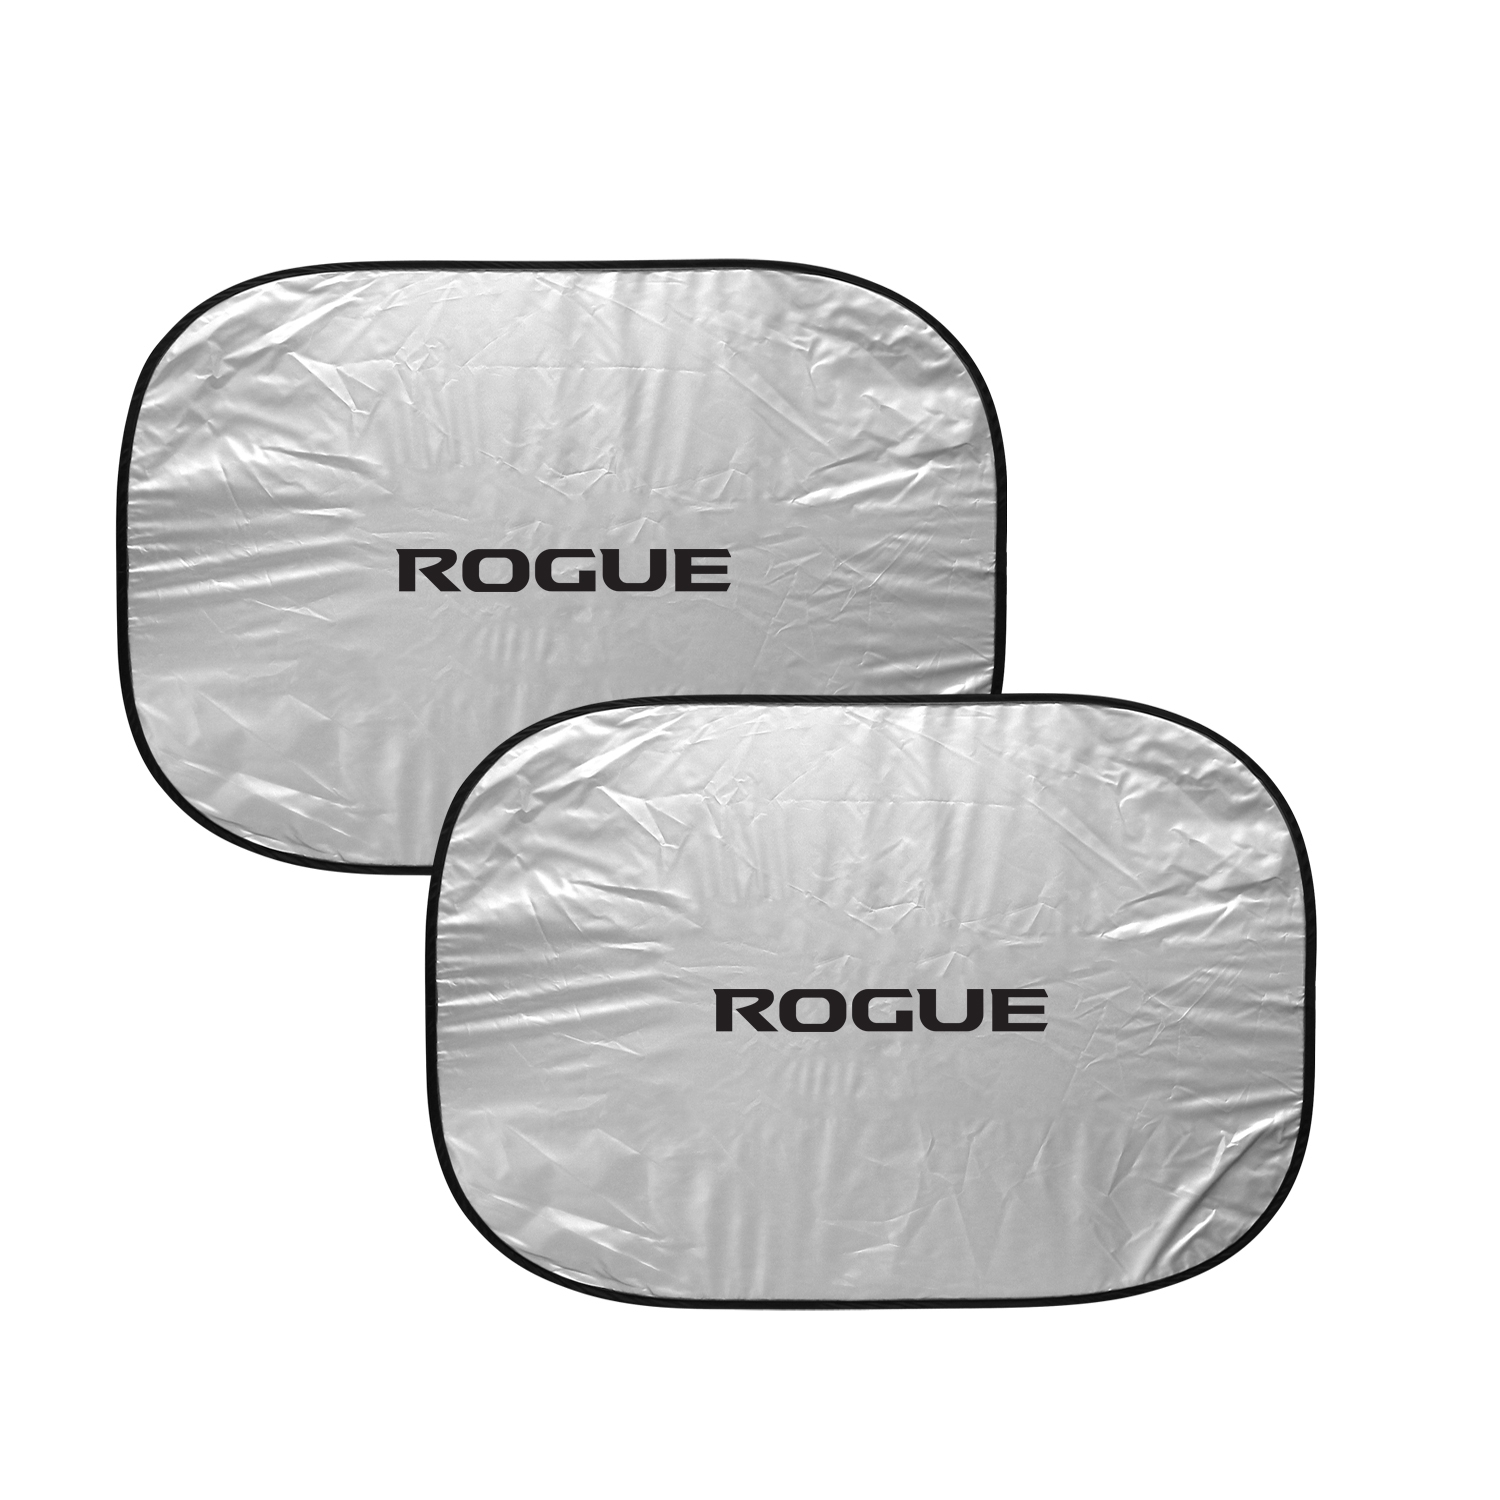 Nissan Rogue Dual Panels Easy Folding Windshield Sun Shade for Cars and Small SUVs